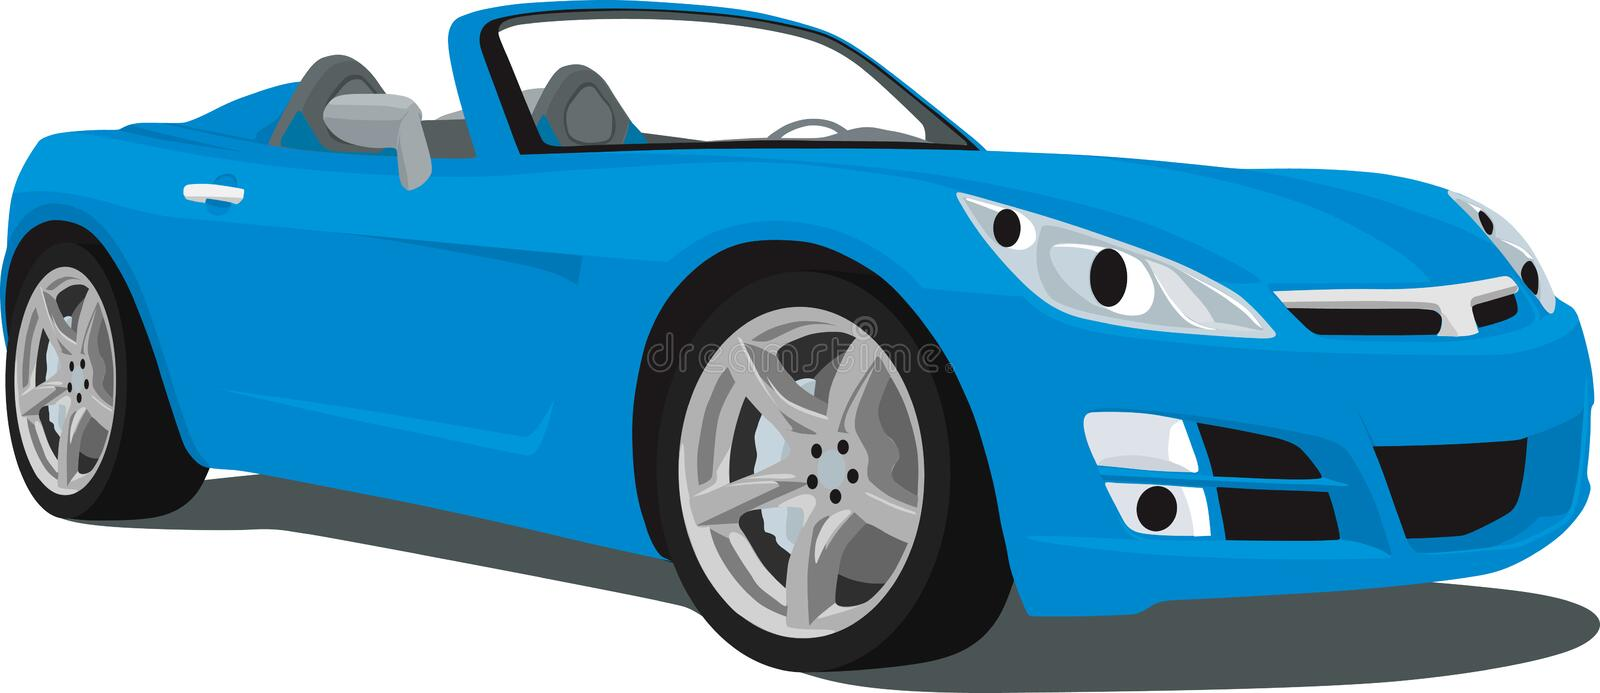 Saturn Sky Roadster. An illustration of a Saturn Sky Sports Car isolated on white. Saved in labeled layers for easy editing. See my portfolio for more automotive vector illustration